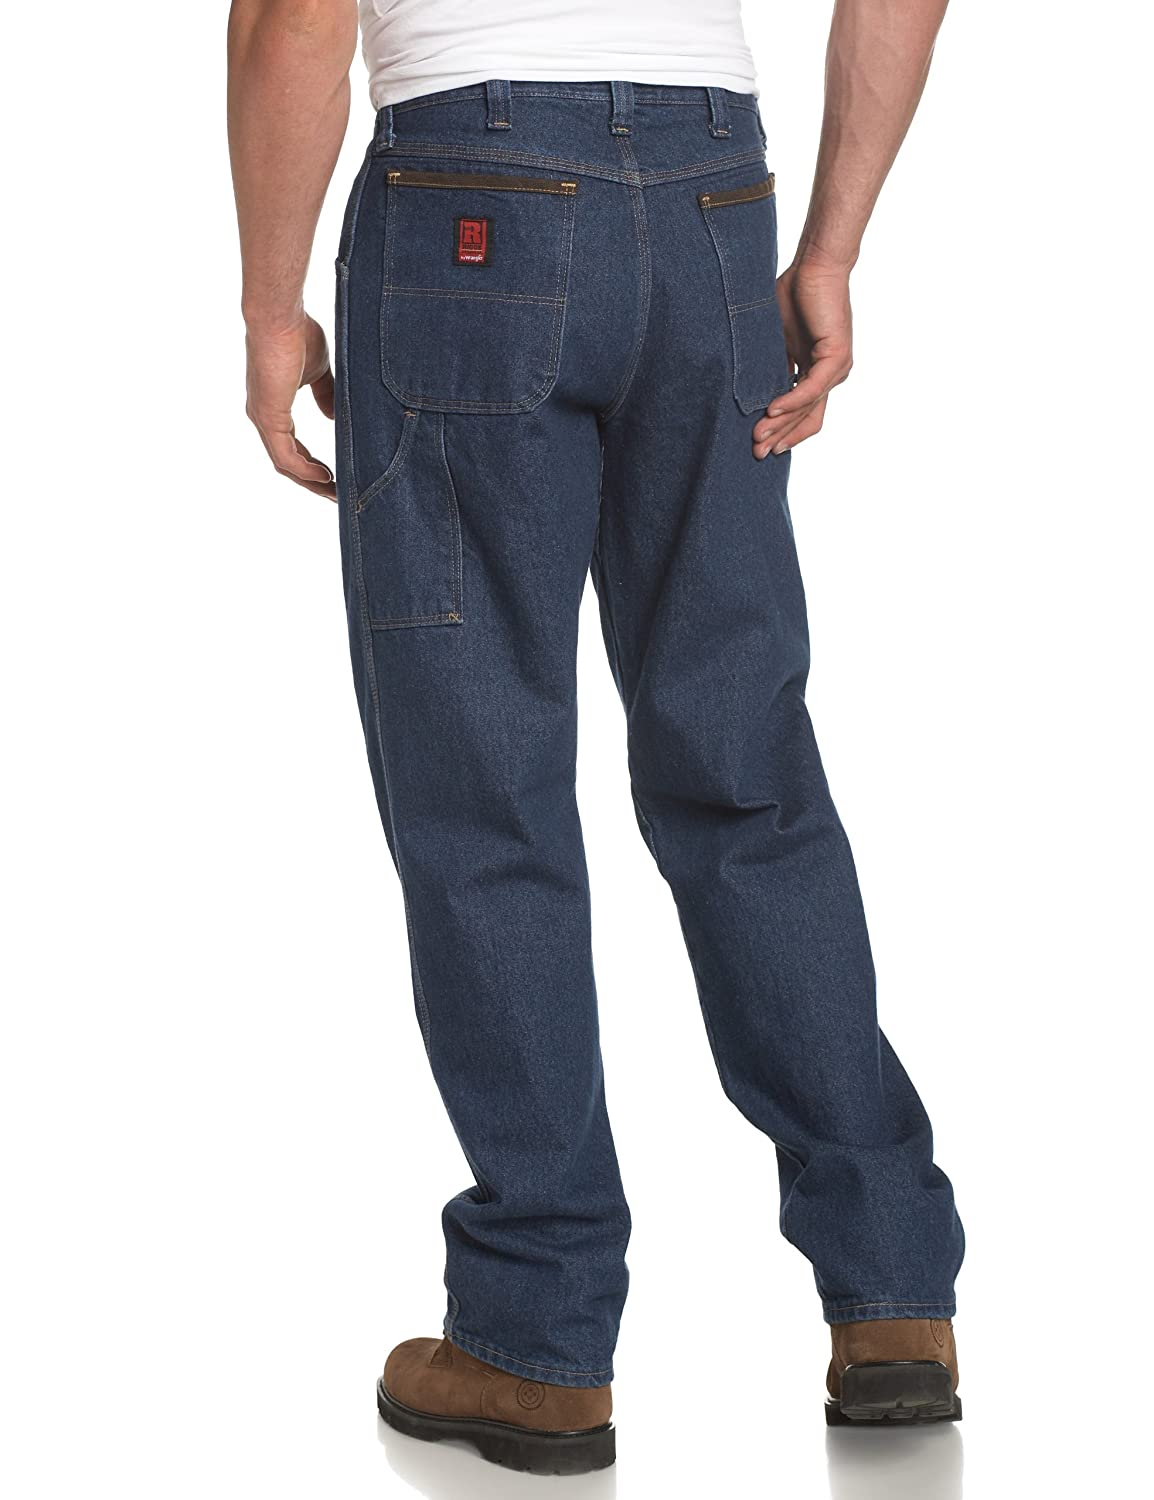 Мужская одежда Riggs Workwear By Wrangler Men's Carpenter Jean